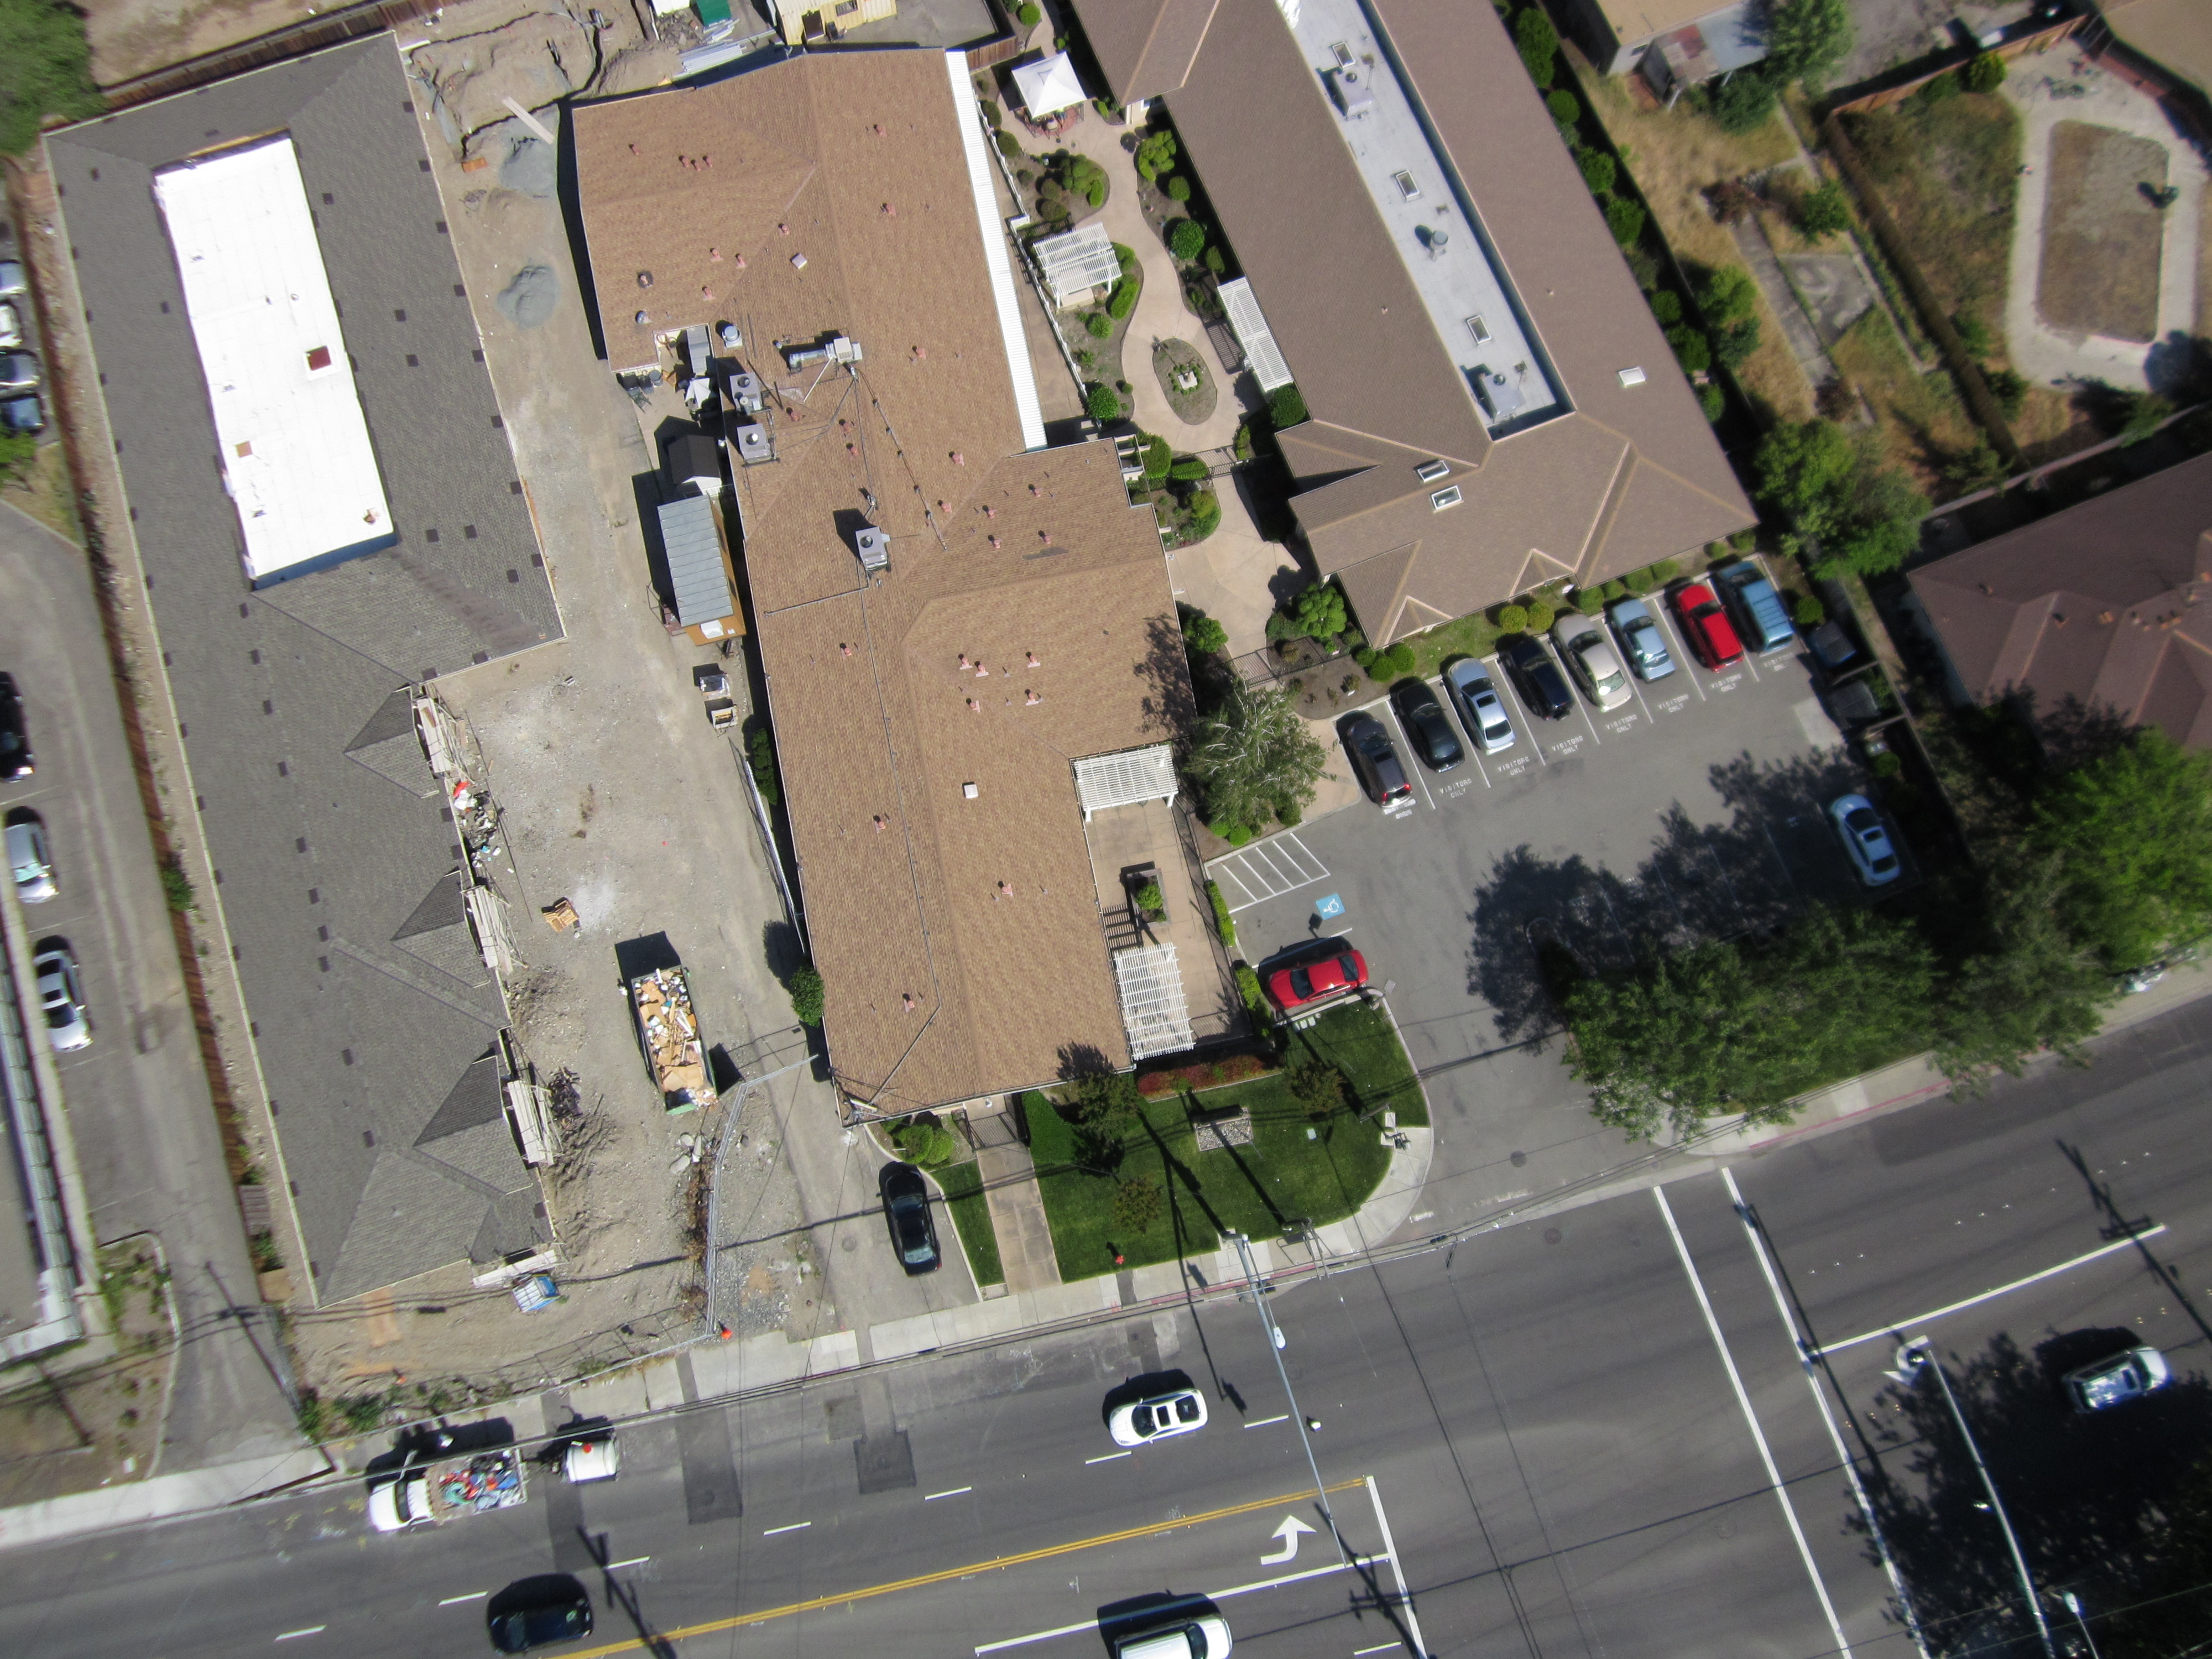 further-updates-to-construction-site-near-mocho-park-livermore